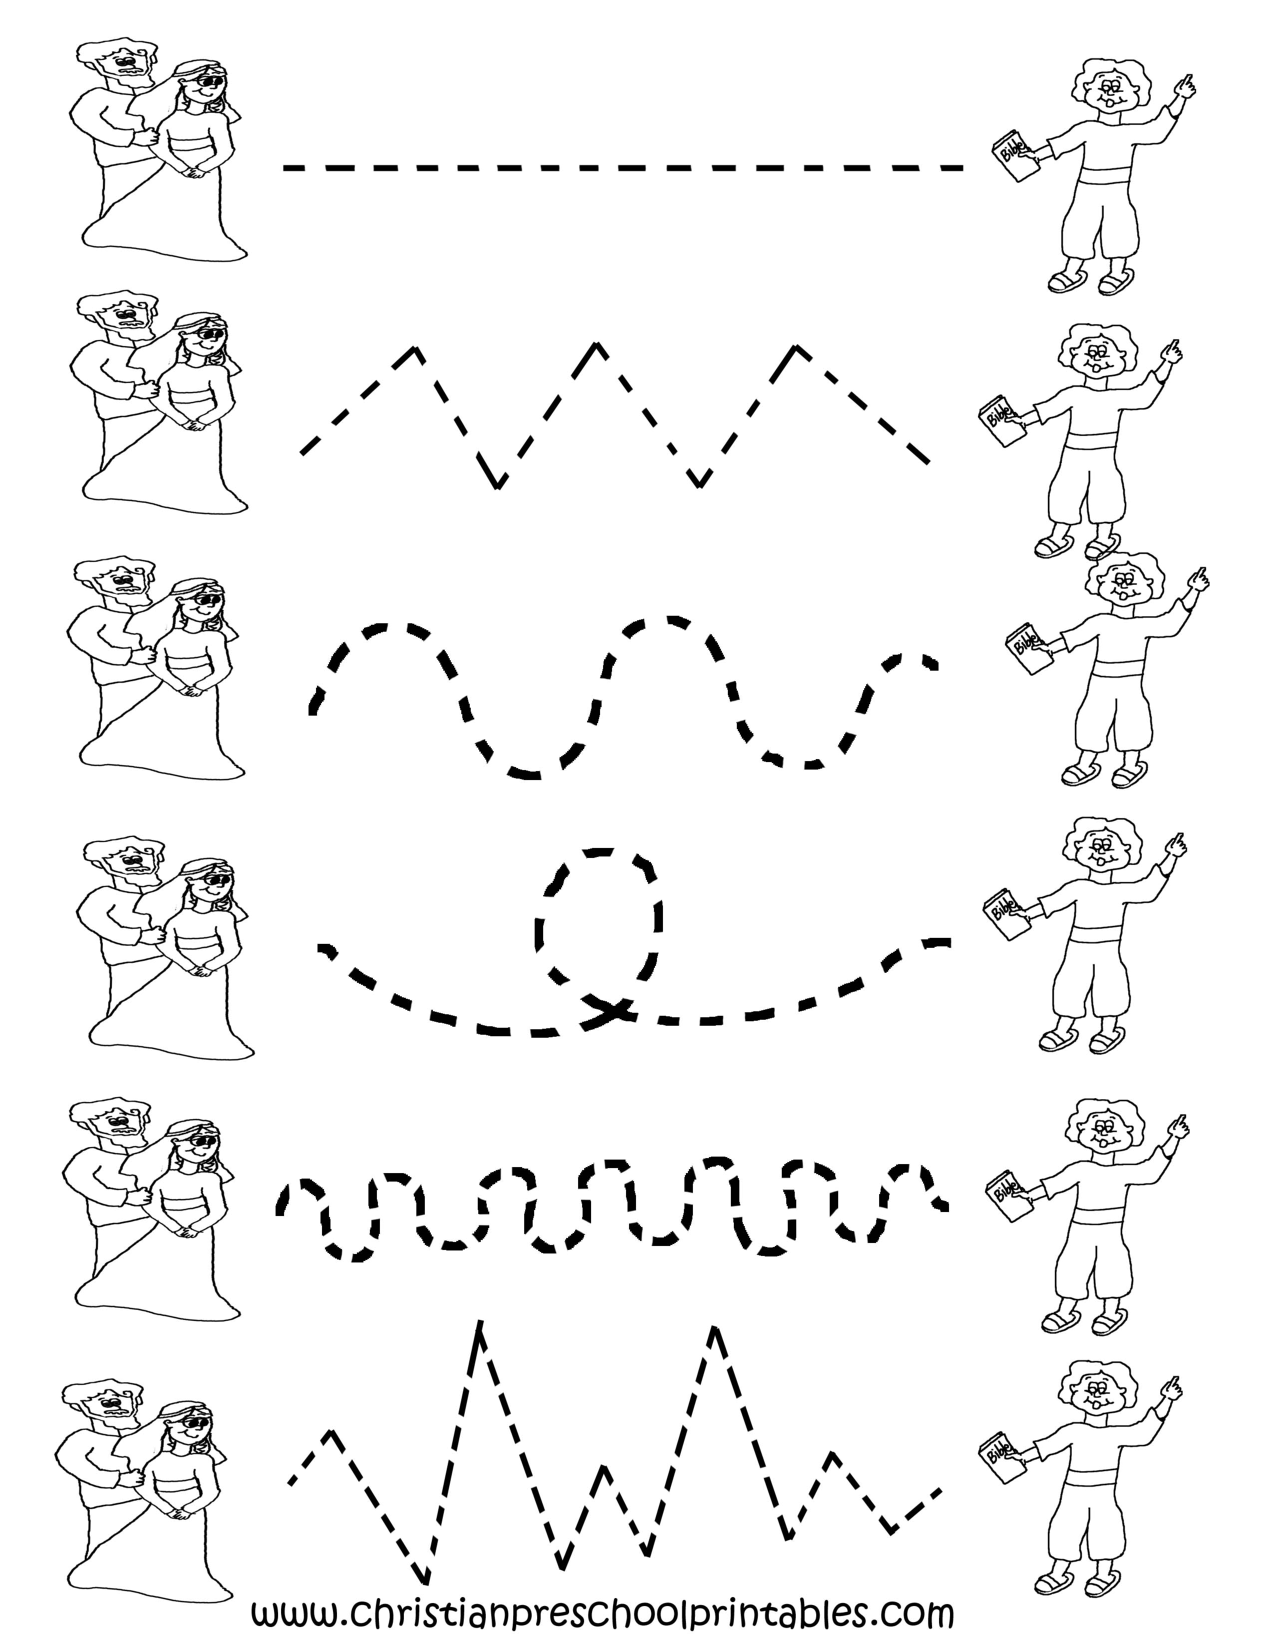 Image Detail For -Preschool Tracing Worksheets | Tracing